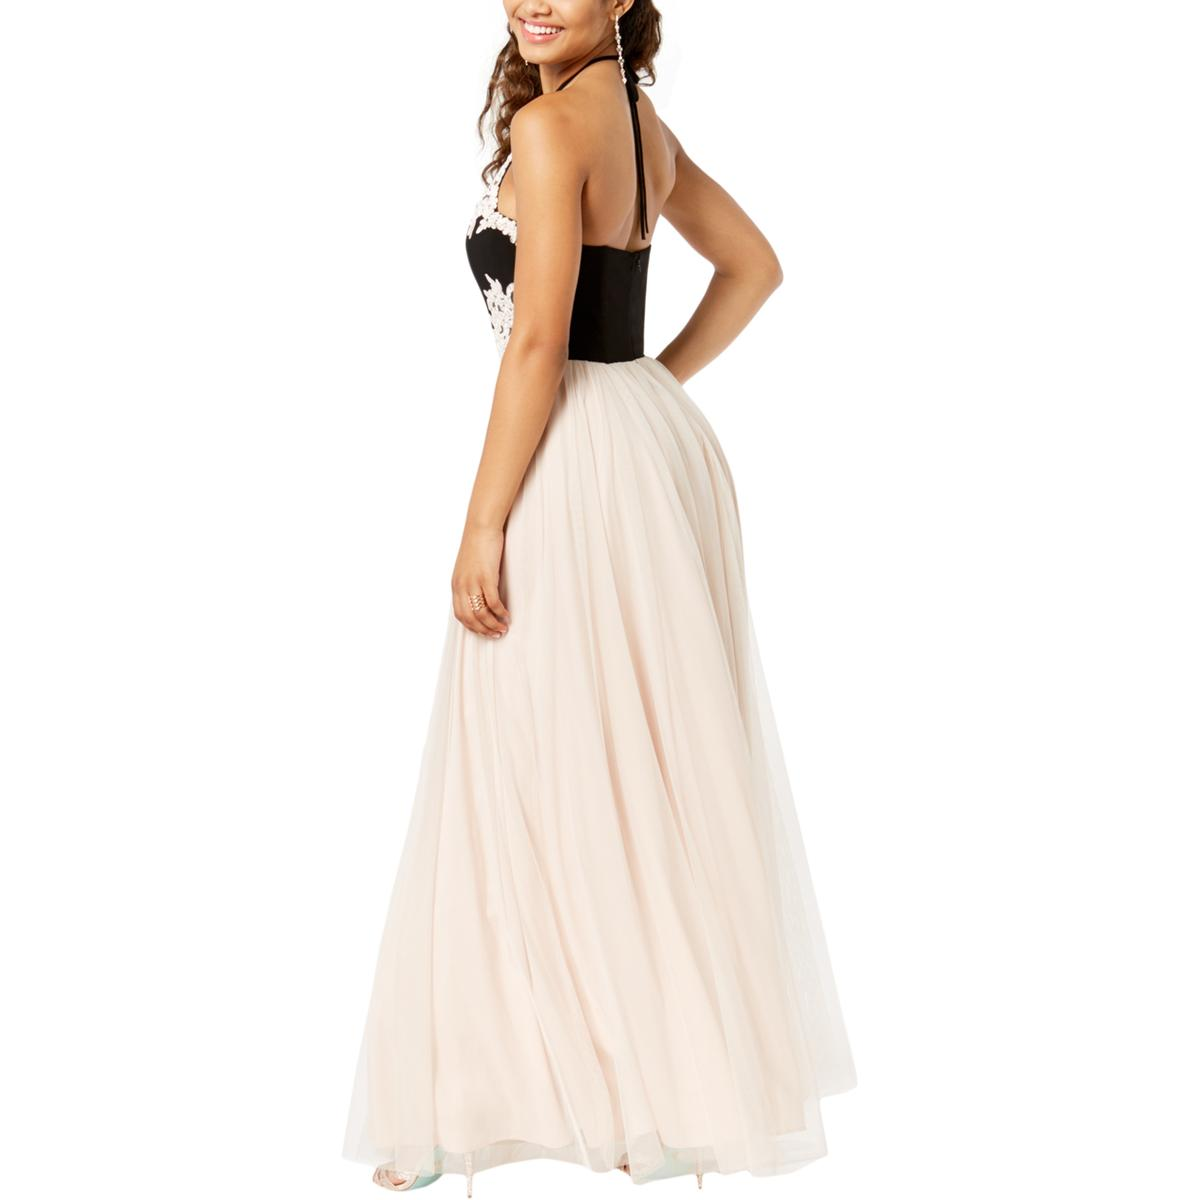 Blondie Nites Womens Embellished Halter Prom Formal Formal Formal Dress Gown Juniors BHFO 3057 595f3f